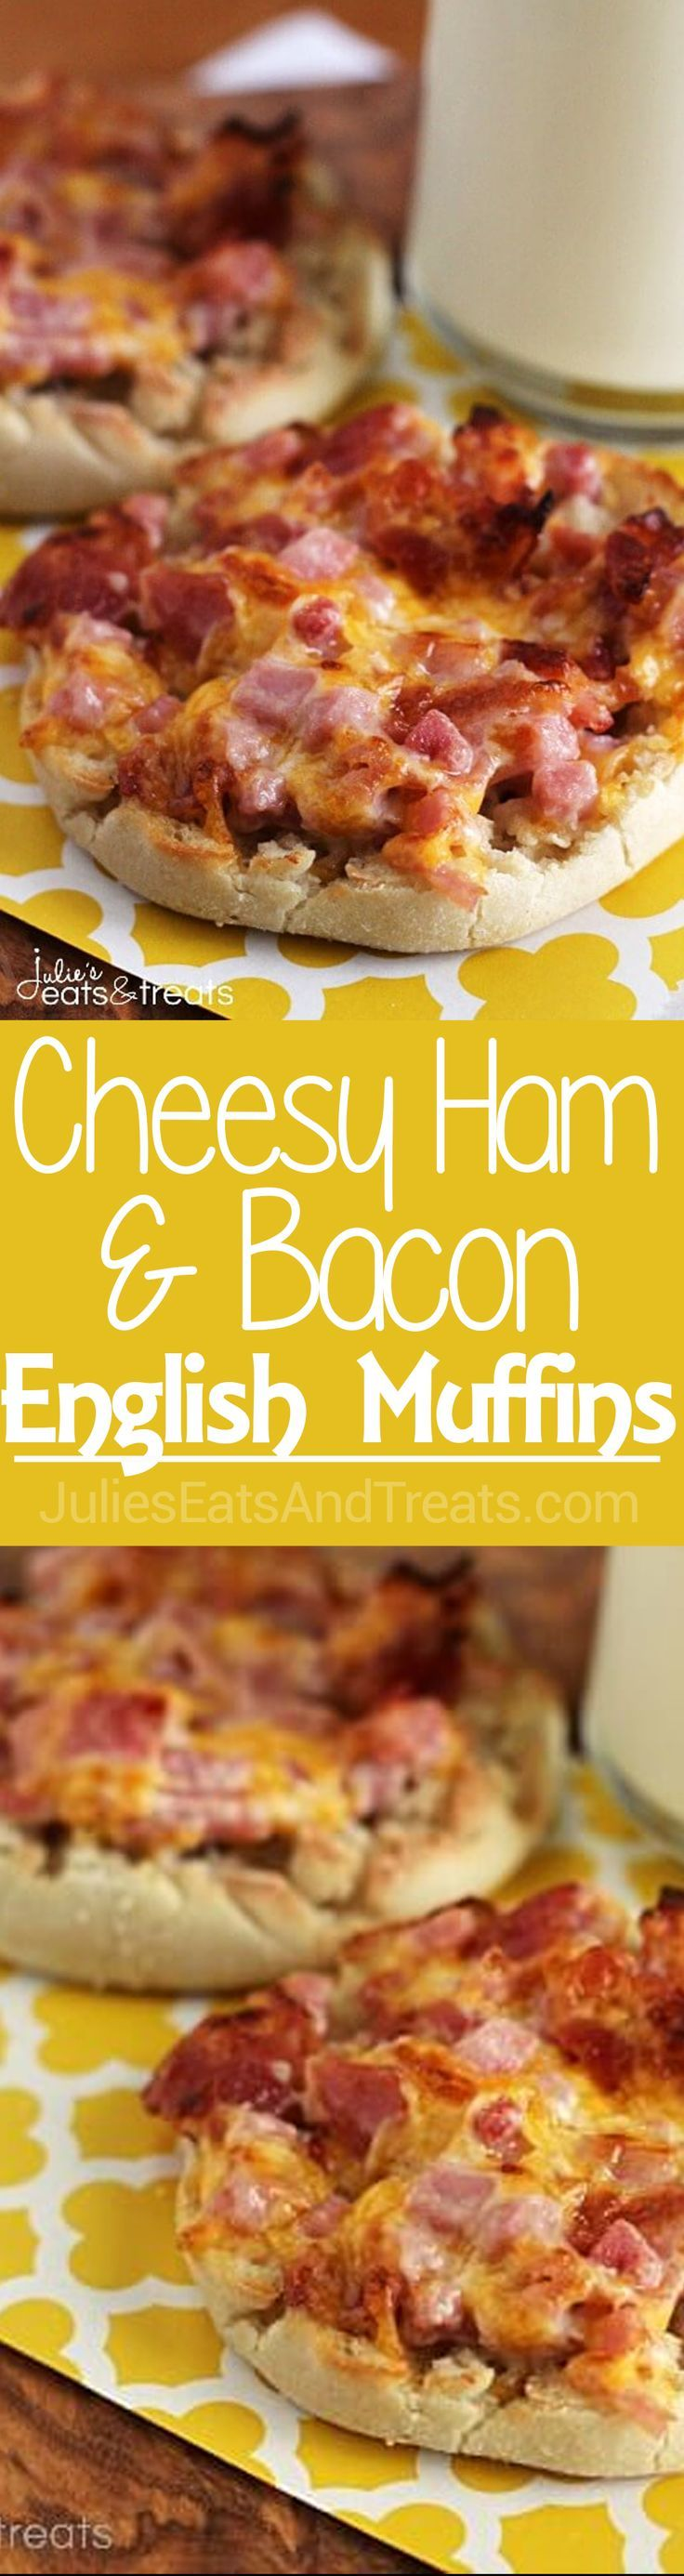 Cheesy Ham & Bacon English Muffins ~ Super Easy Breakfast for Mornings on the Go! English Muffin Loaded with Cheese, Ham & Bacon! via @julieseats